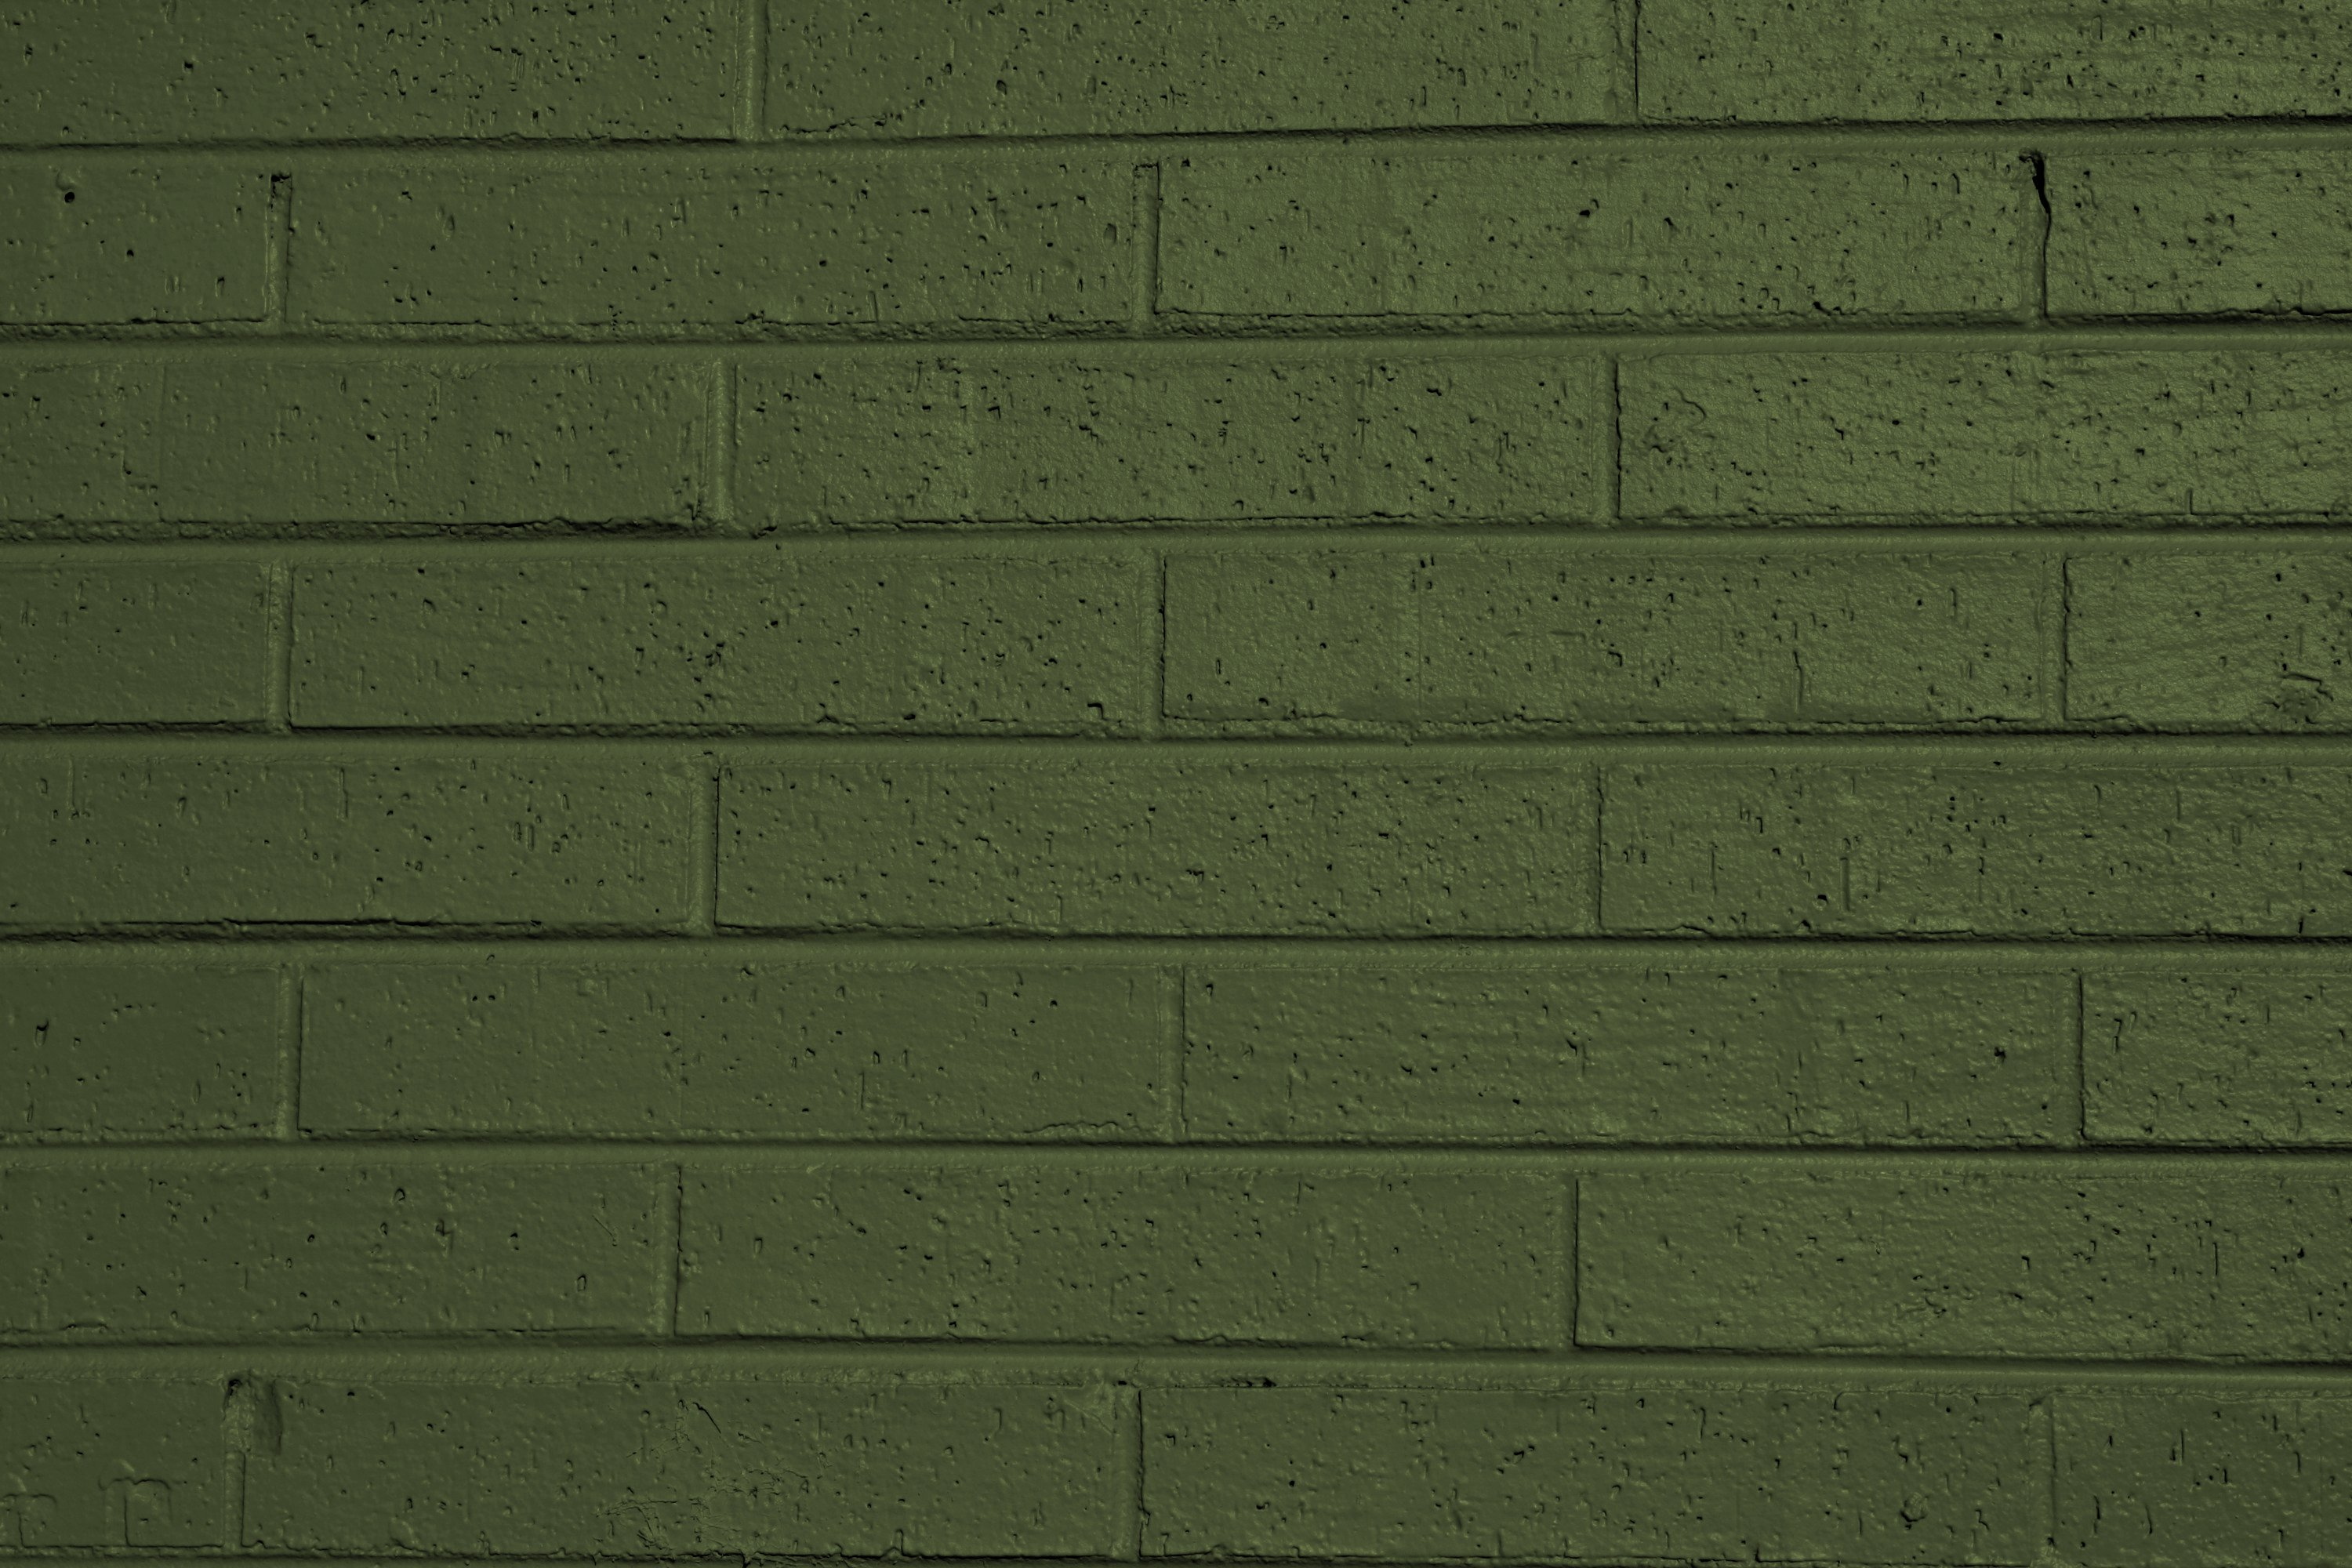 Olive Green Painted Brick Wall Texture Picture 3000x2000